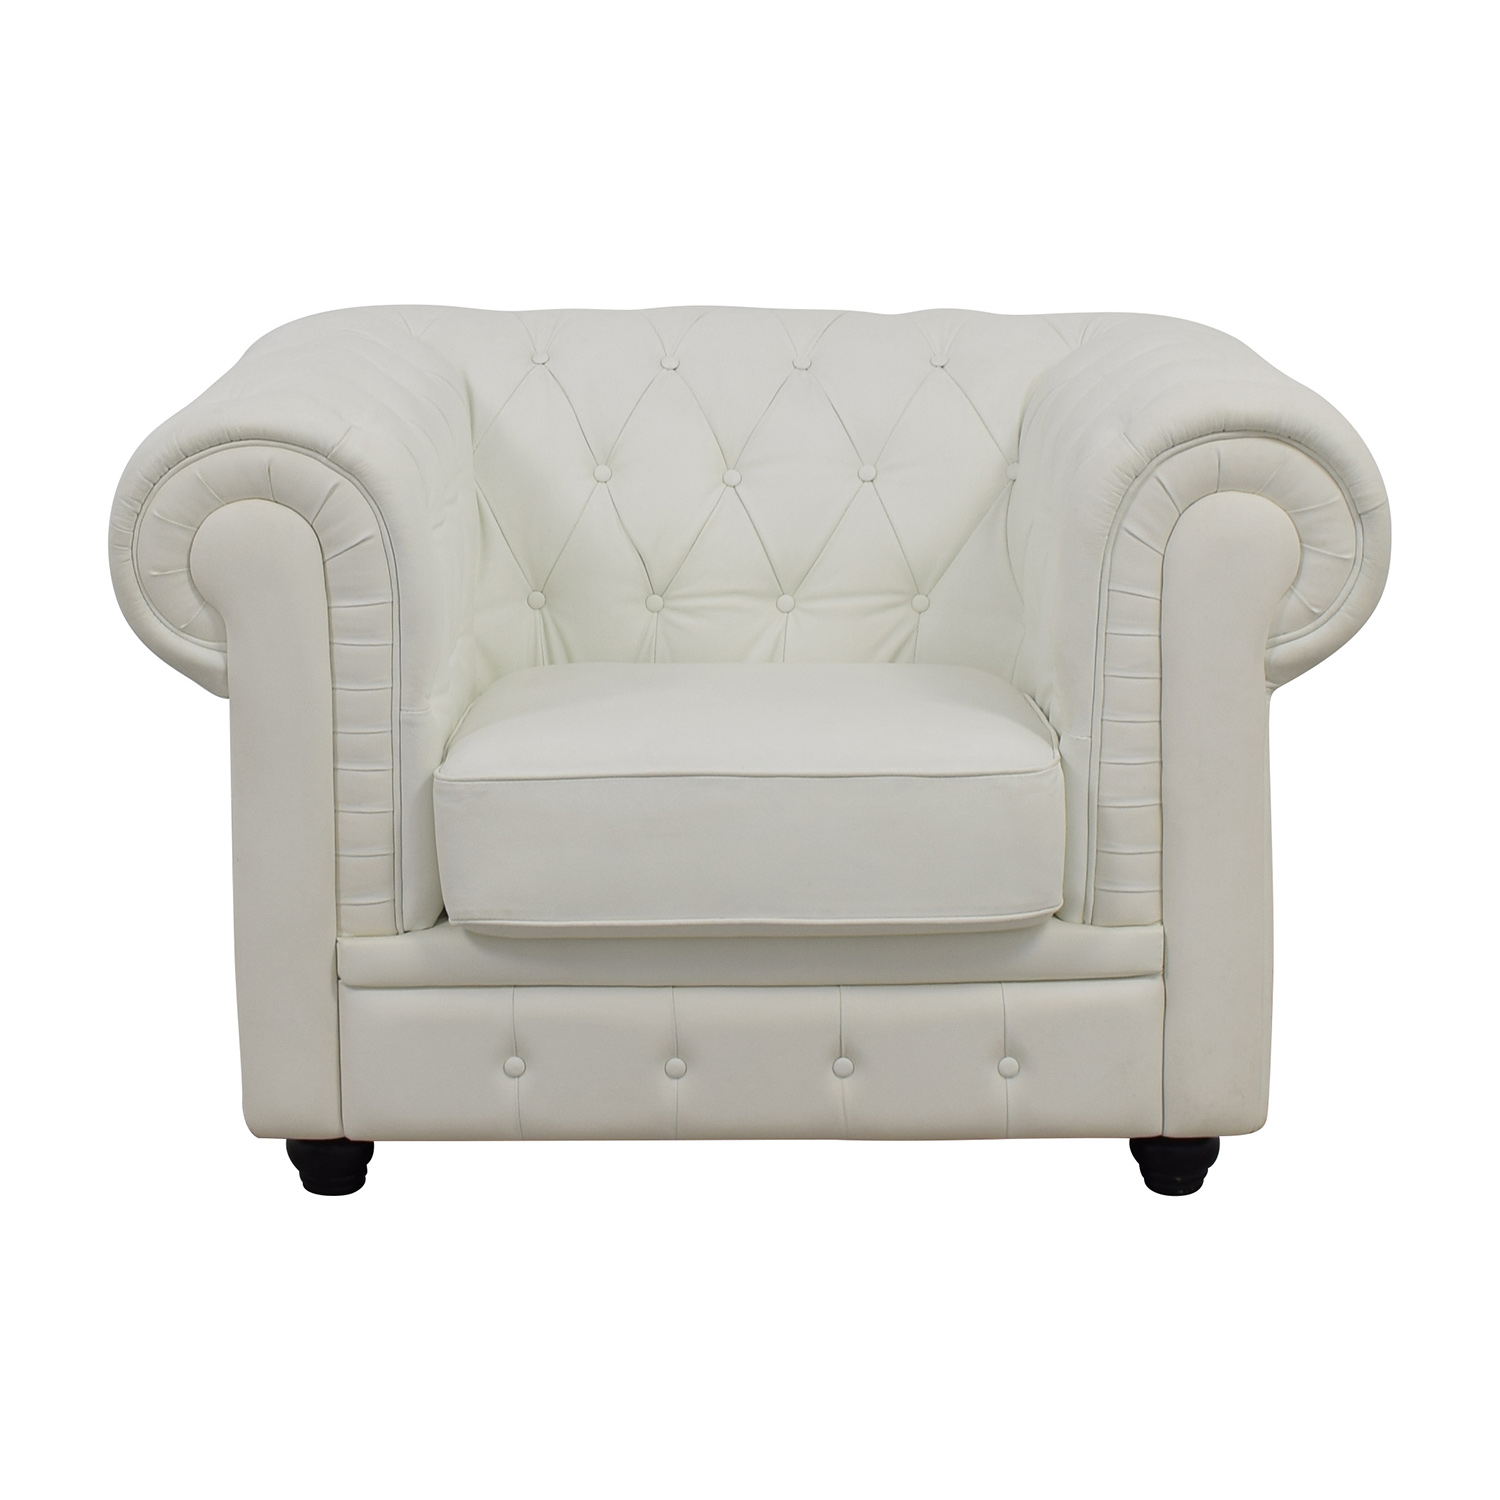 White Leather Wing Chair - Chesterfield tufted white leather accent chair coupon